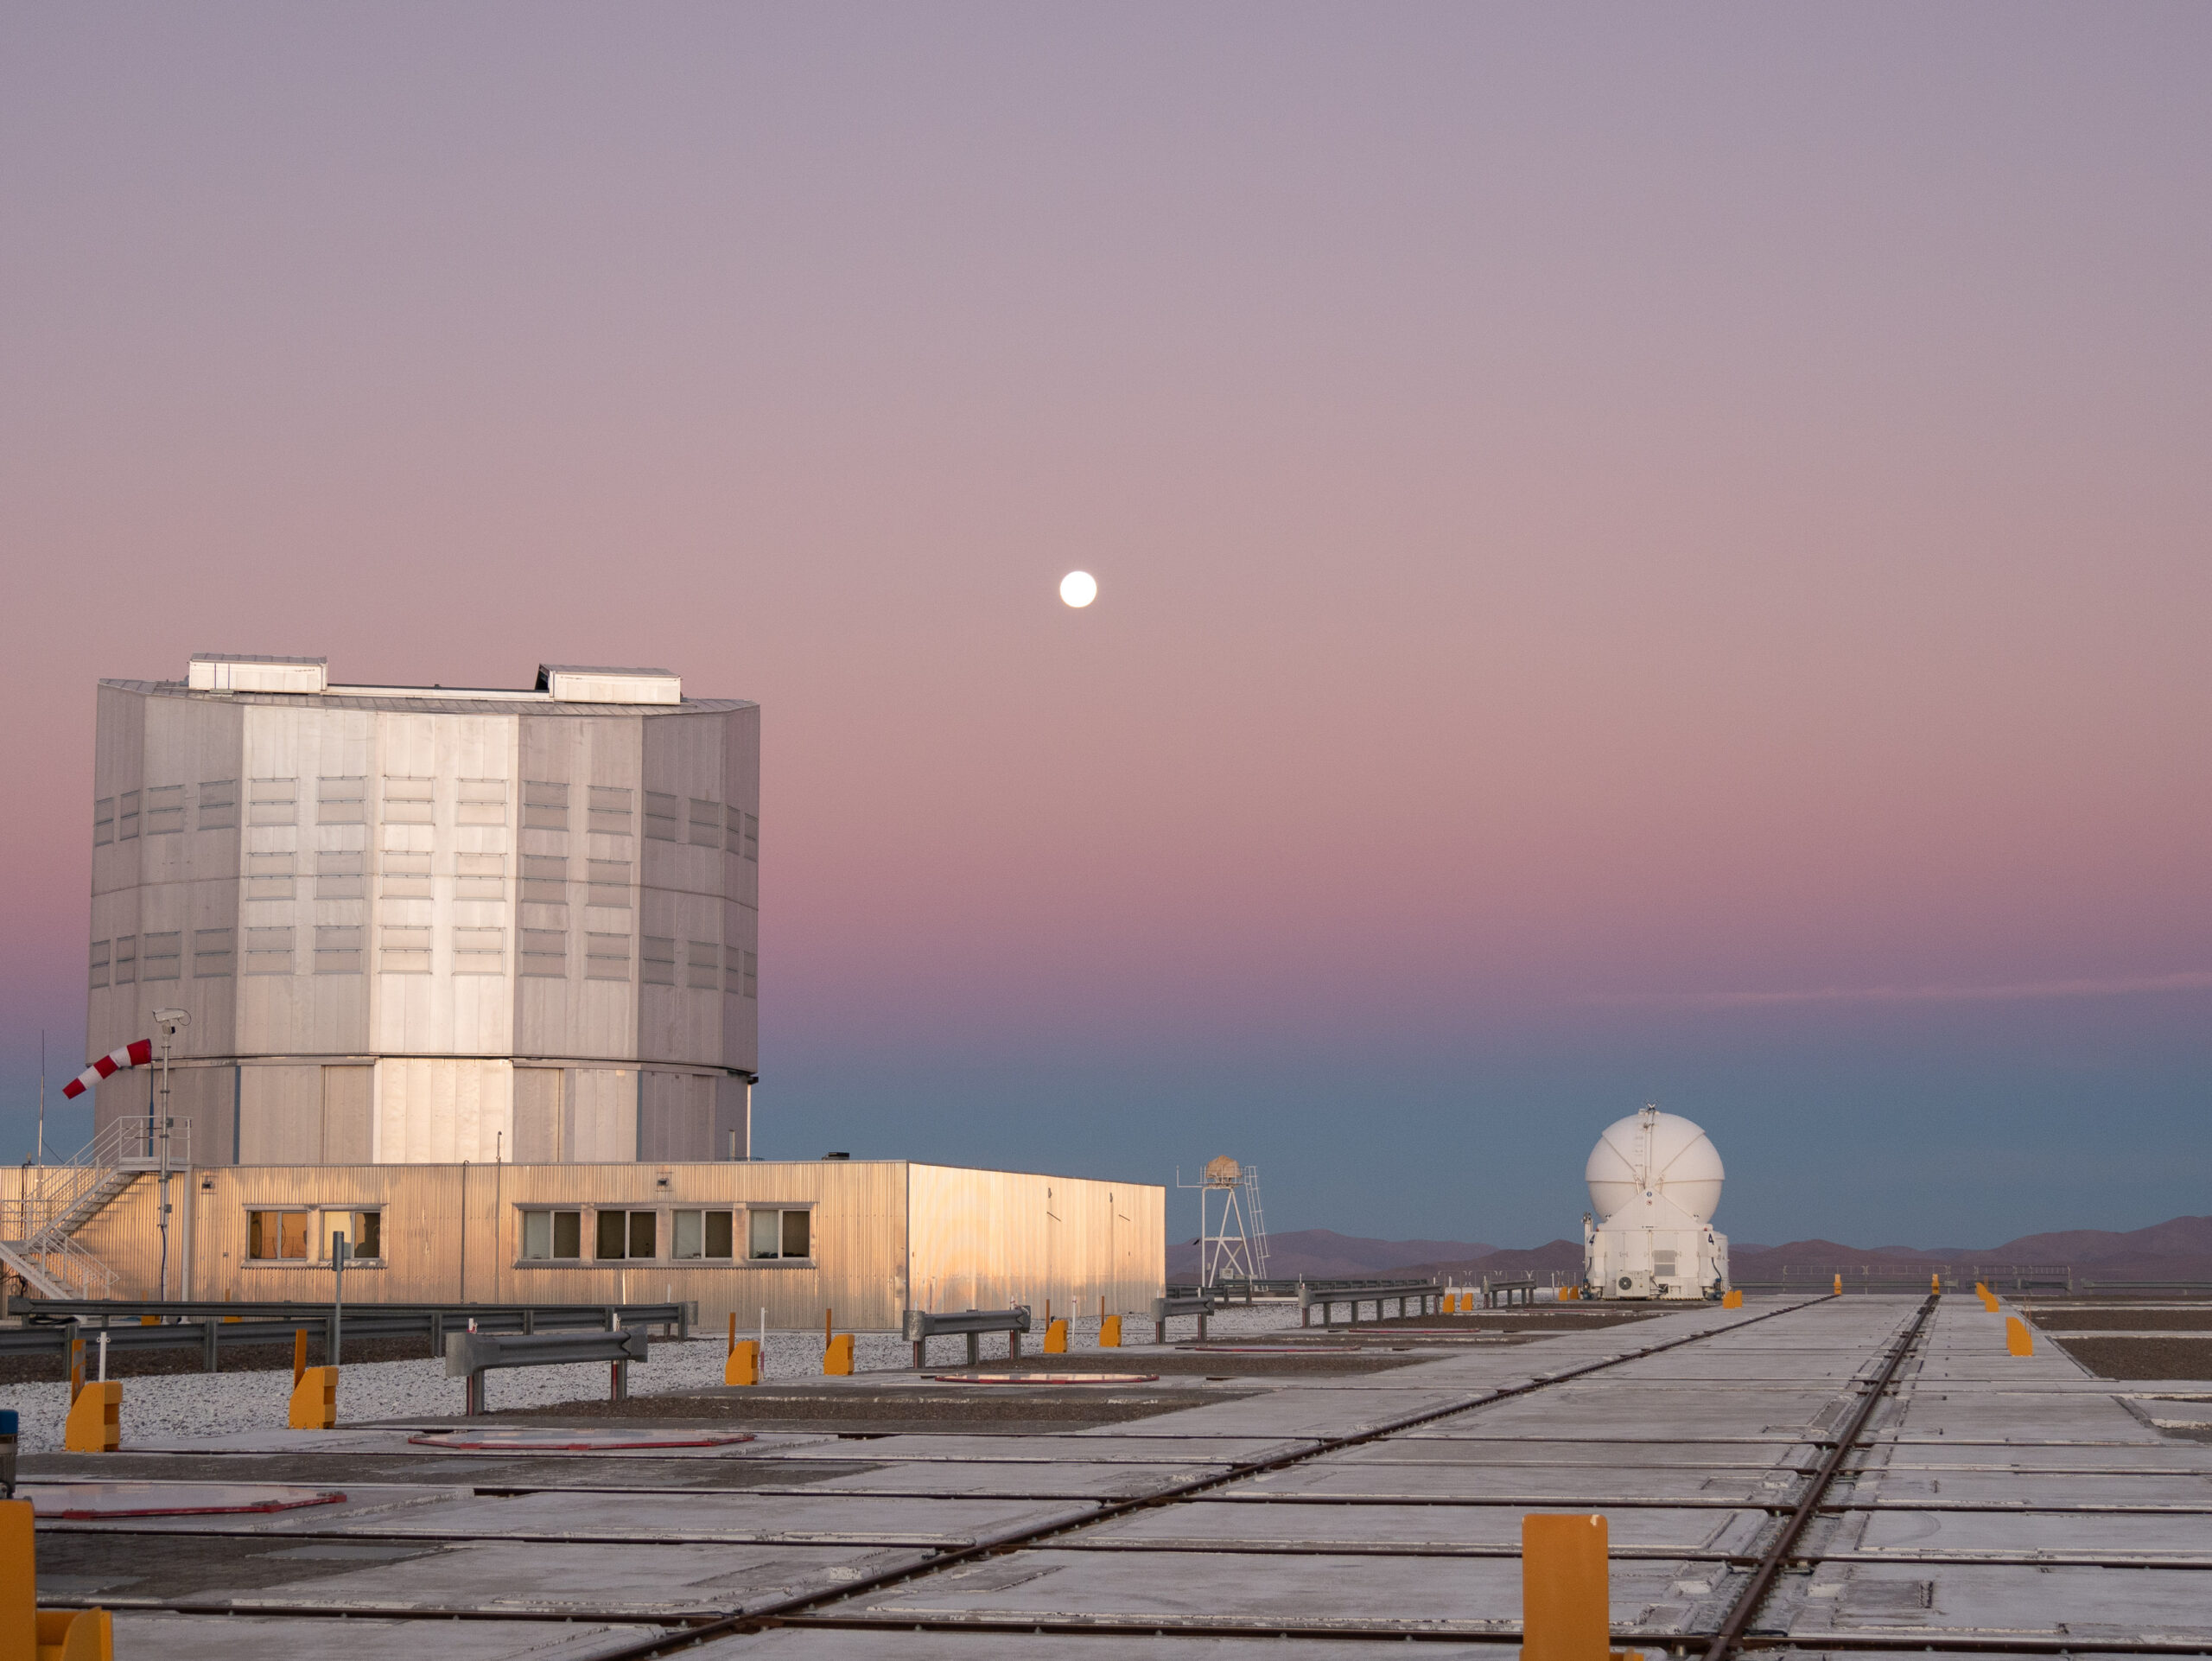 Part of the telescopes at the Paranal observatory in Chile.